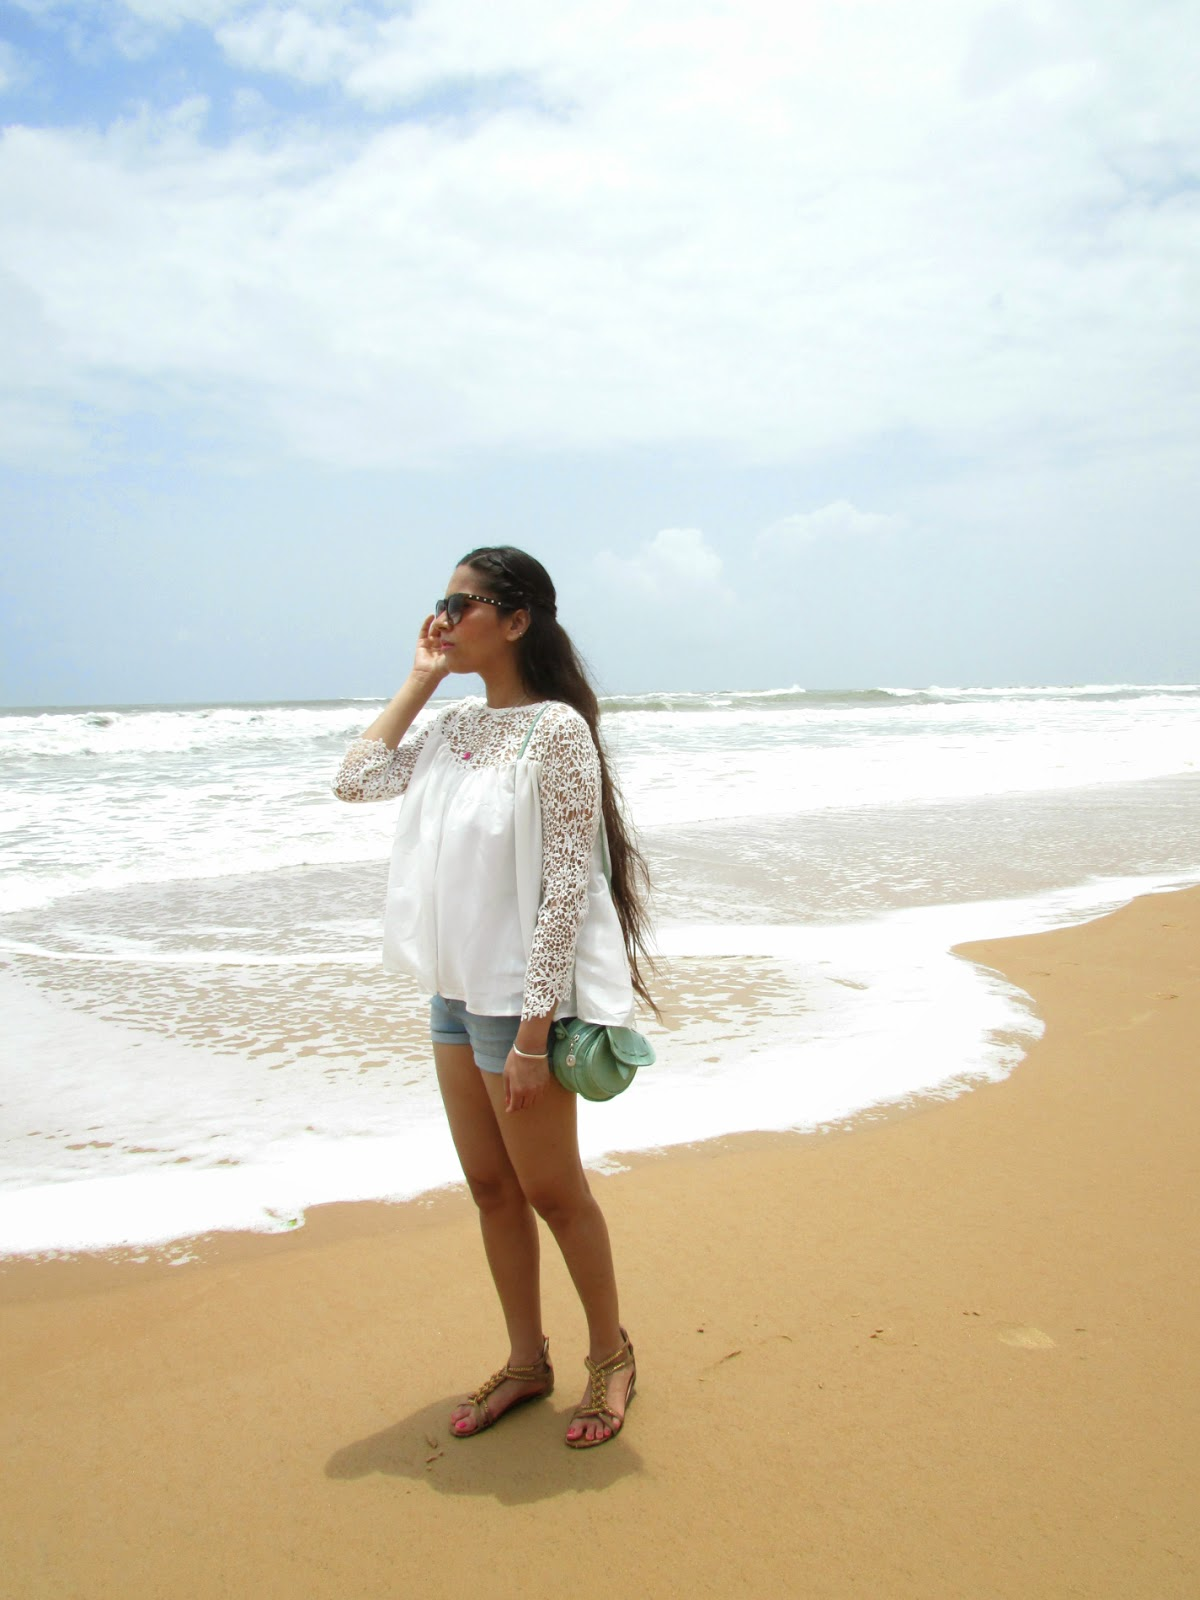 goa, goa-india, beach , summer vacation, vacation summer 2014, beach vacation , best beach destination in India , tourist spots i india , thisnthat, beach outfits, outfits, beach style, beach essentials, howto dress for beach holiday , how to dress for beach ,